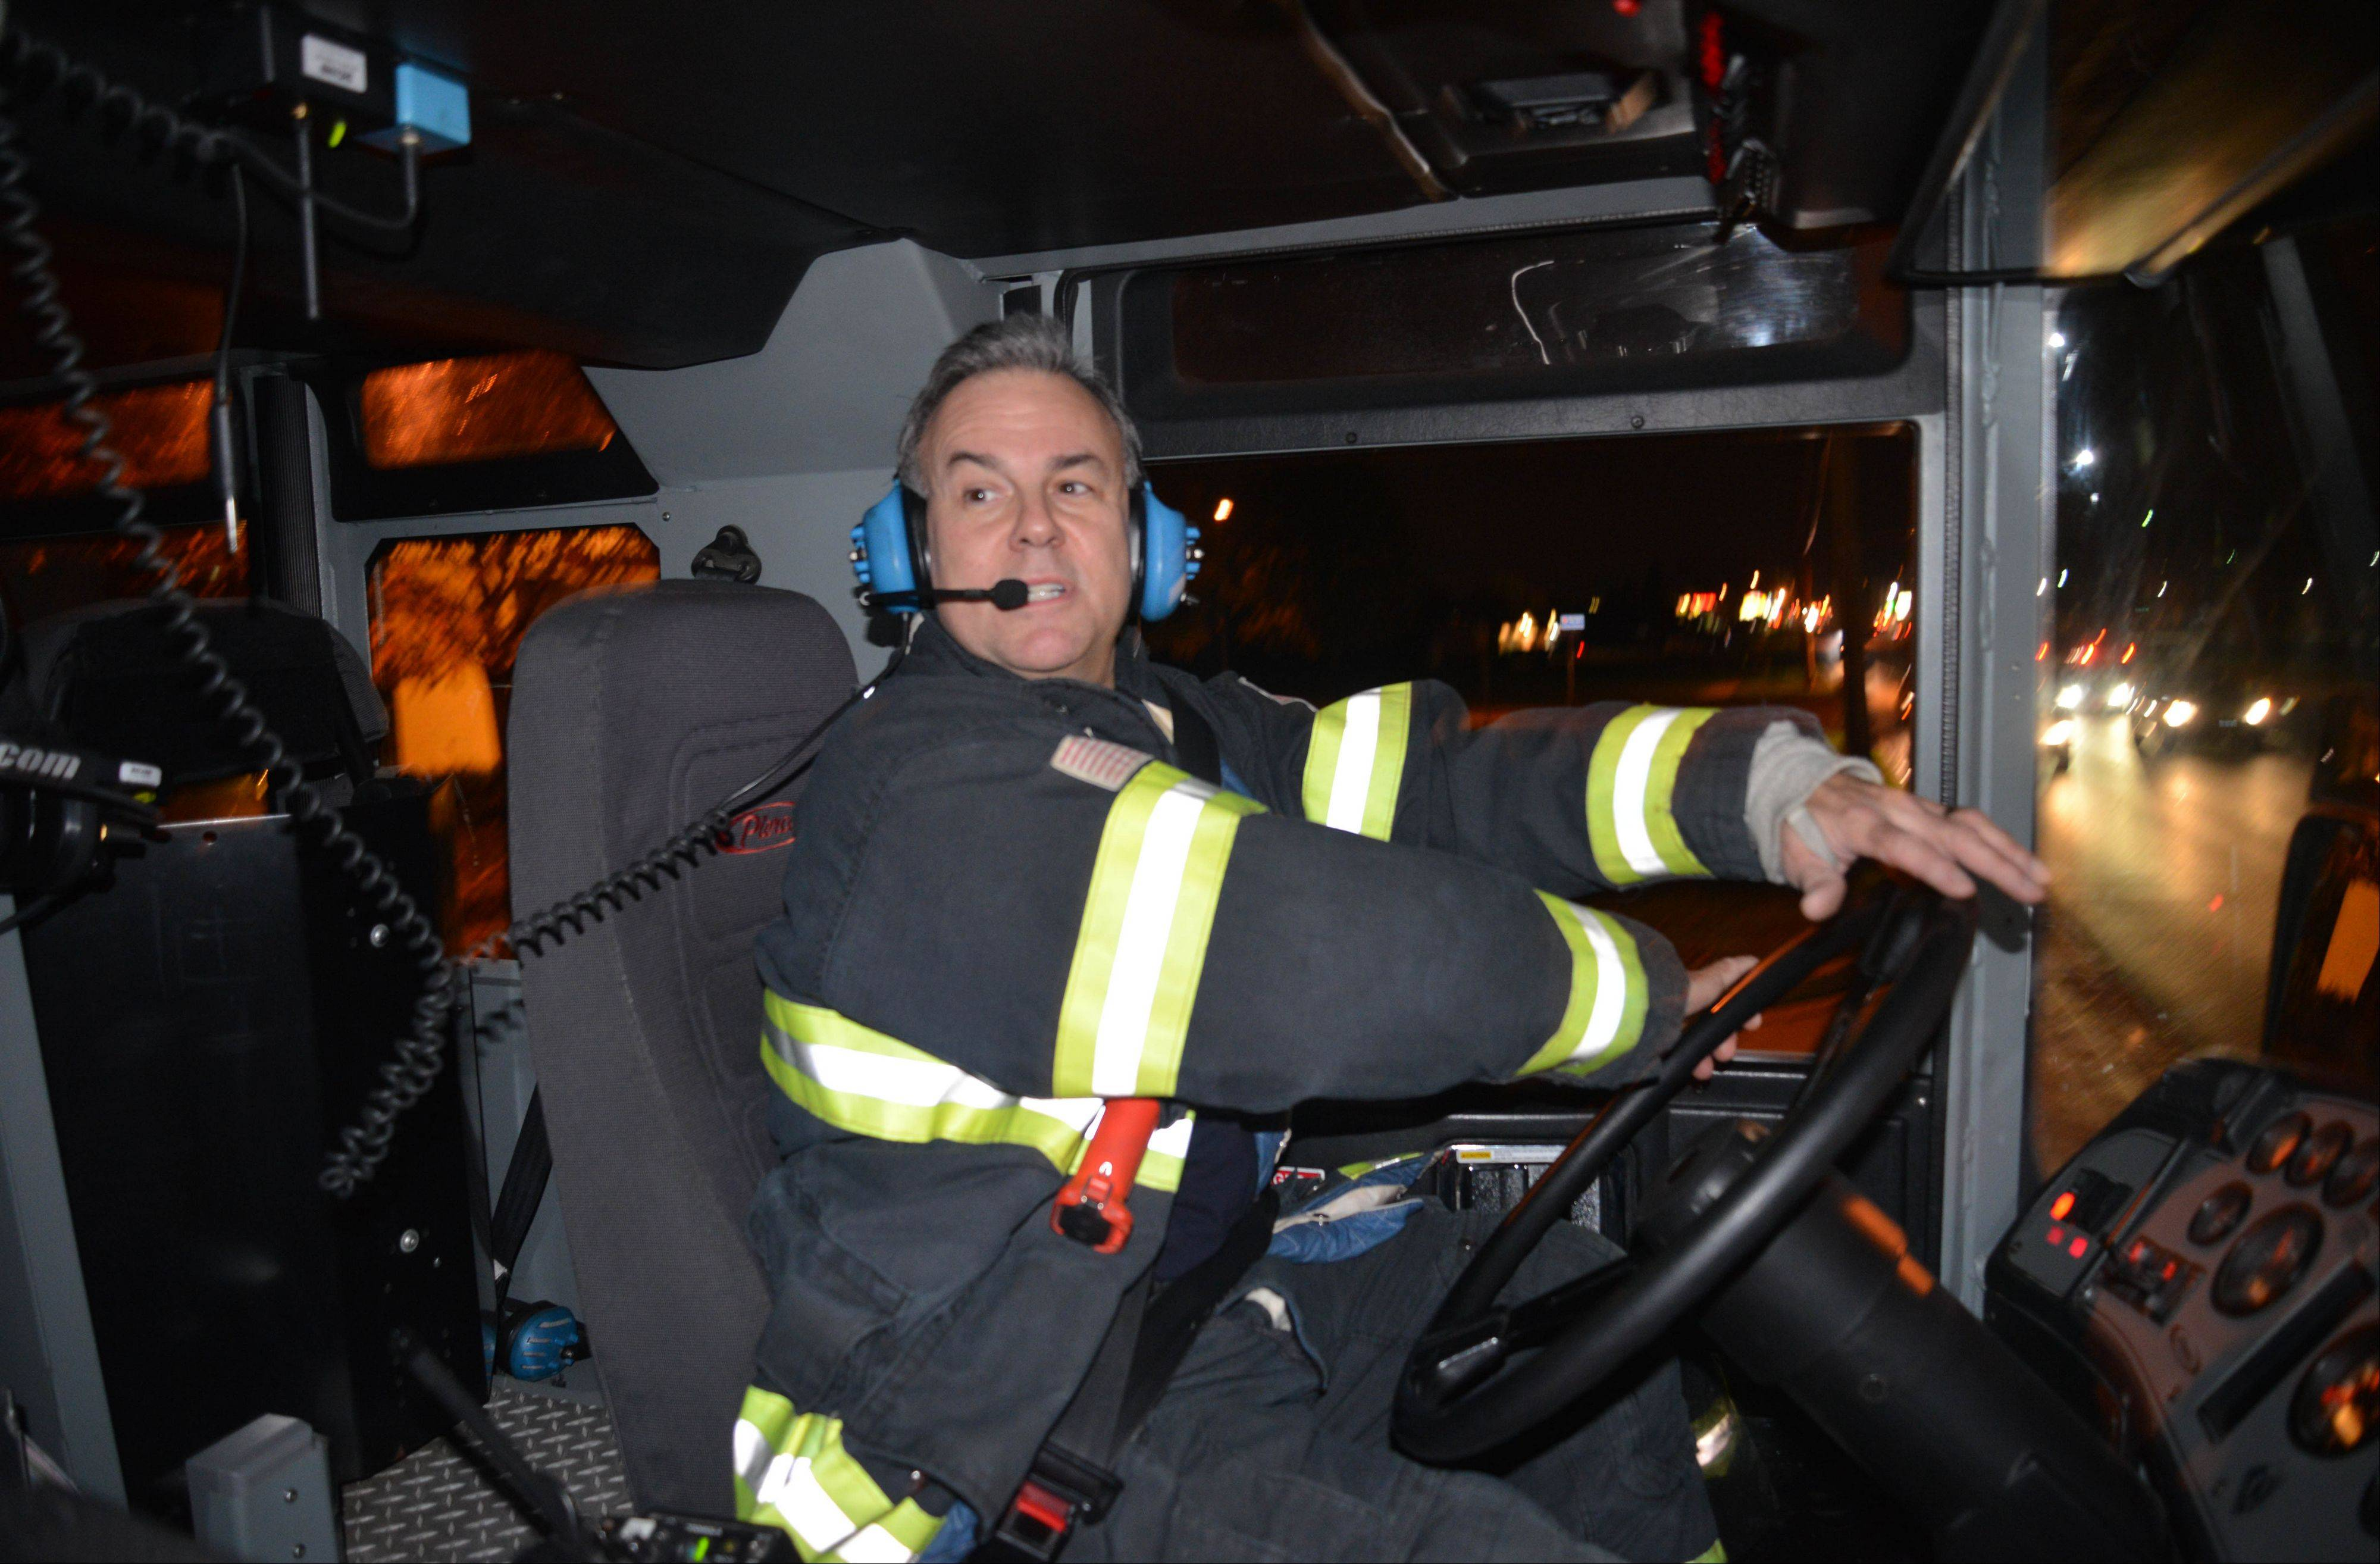 Dan Sullivan drives one of the department rigs from the Westmont Fire Station during a recent night on shift.